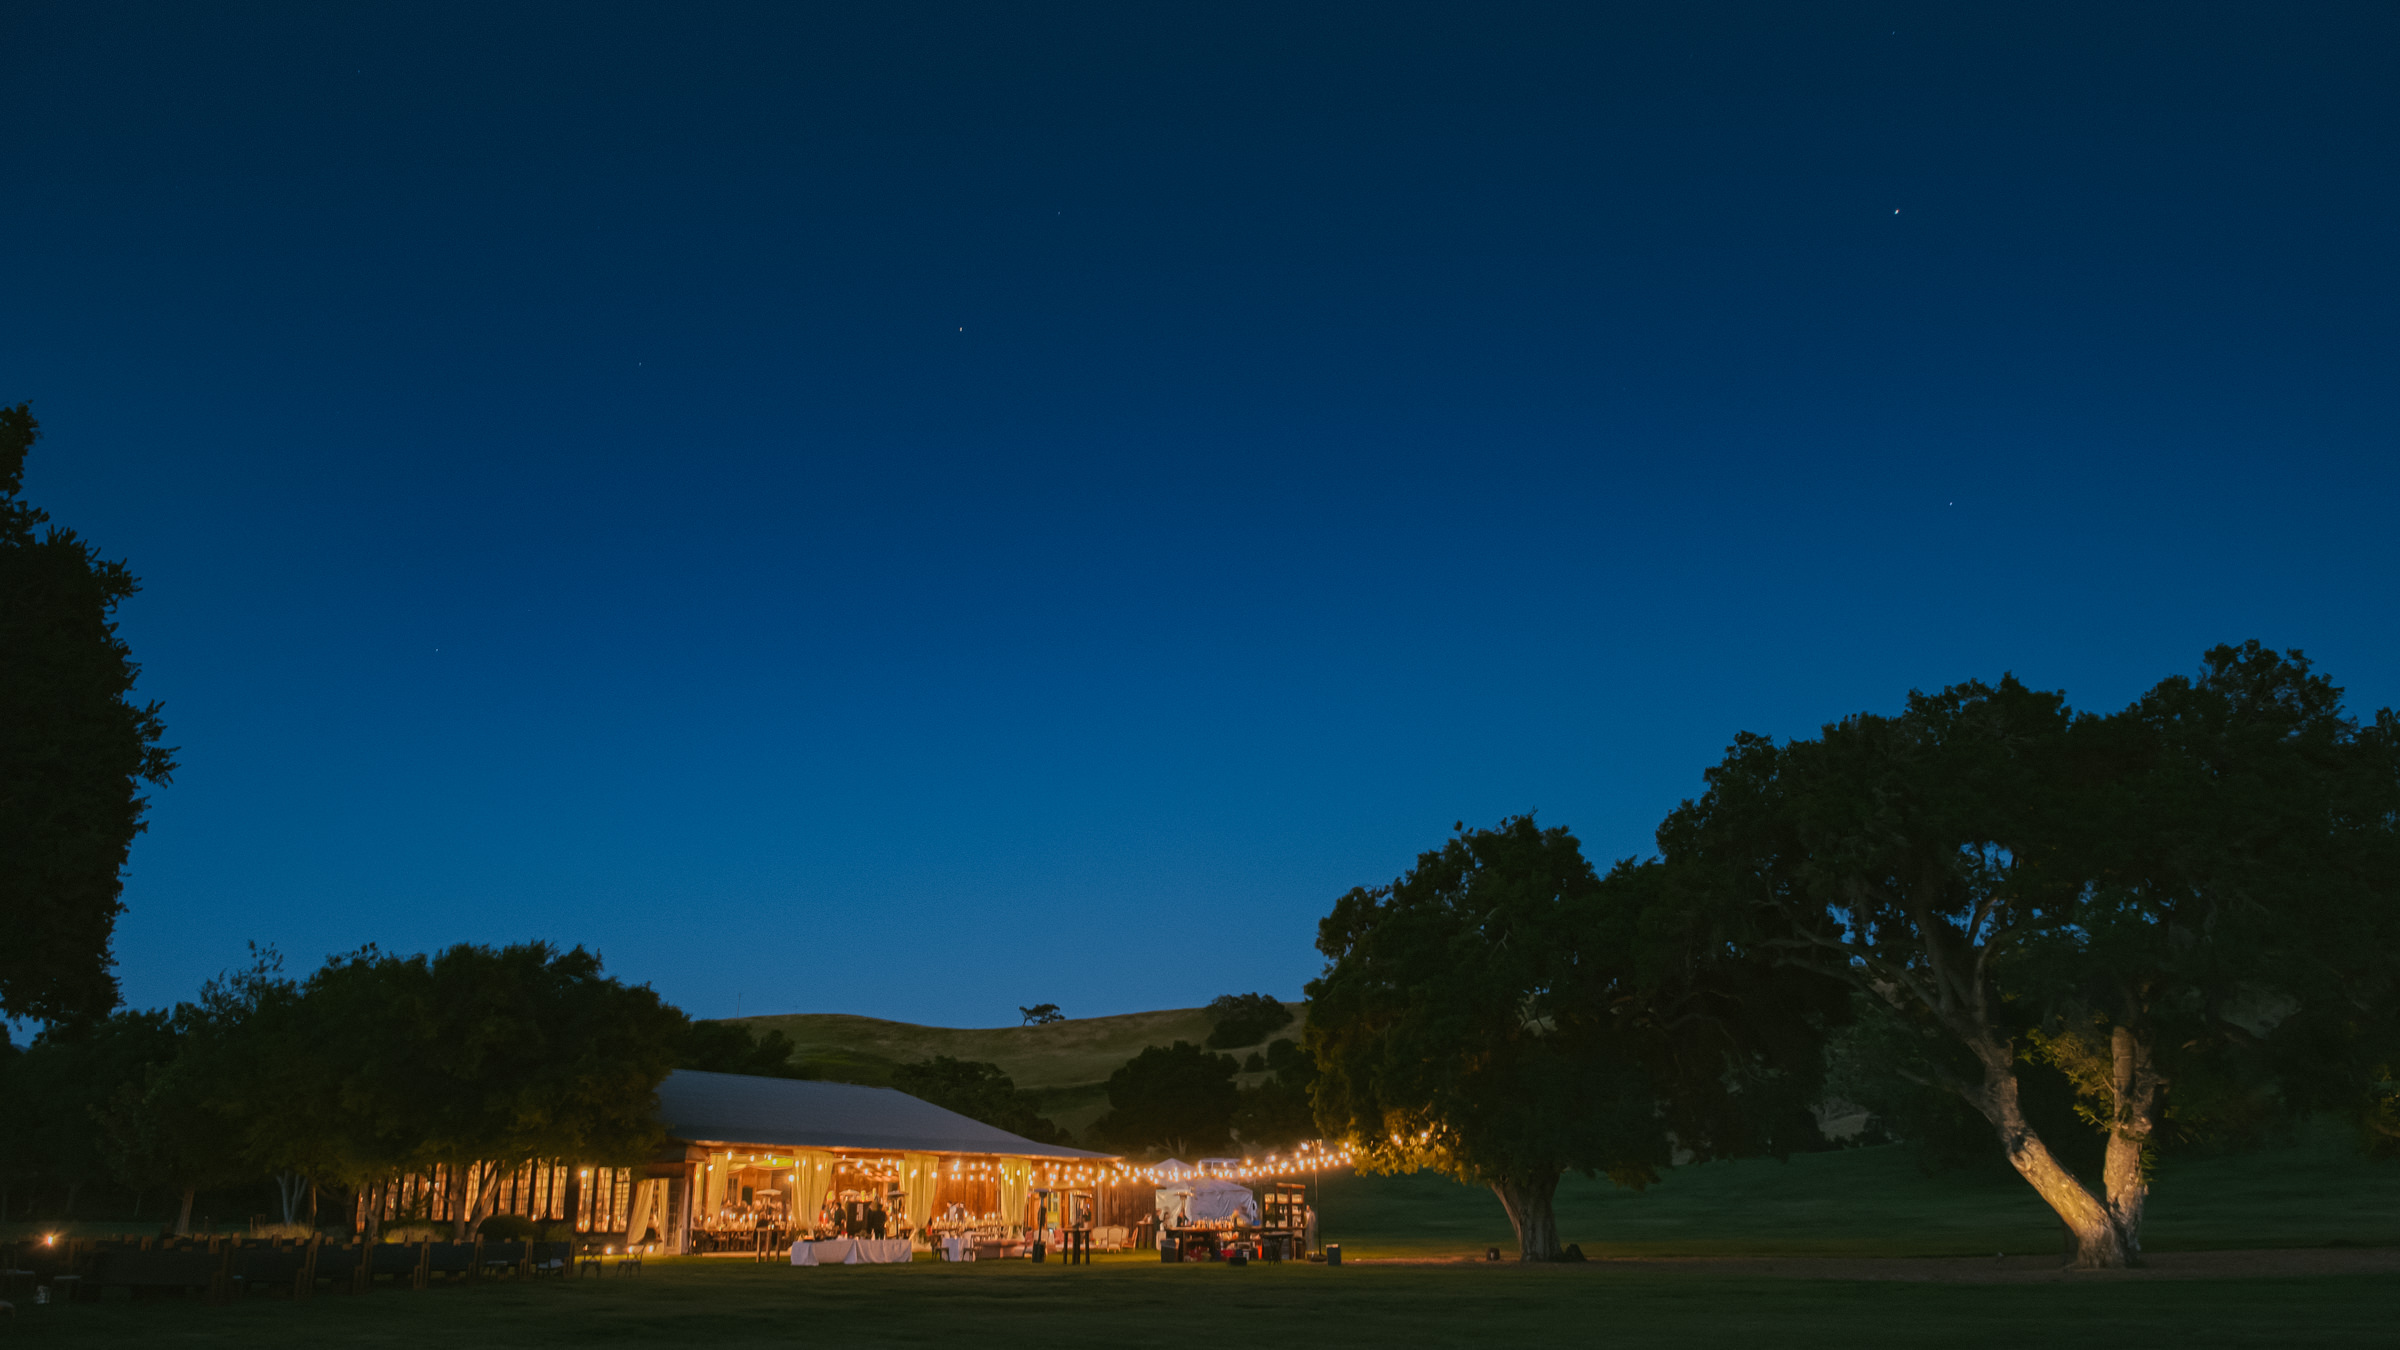 wedding-tent-lit-up-at-twilight-photo-by-amy-and-stuart-photography